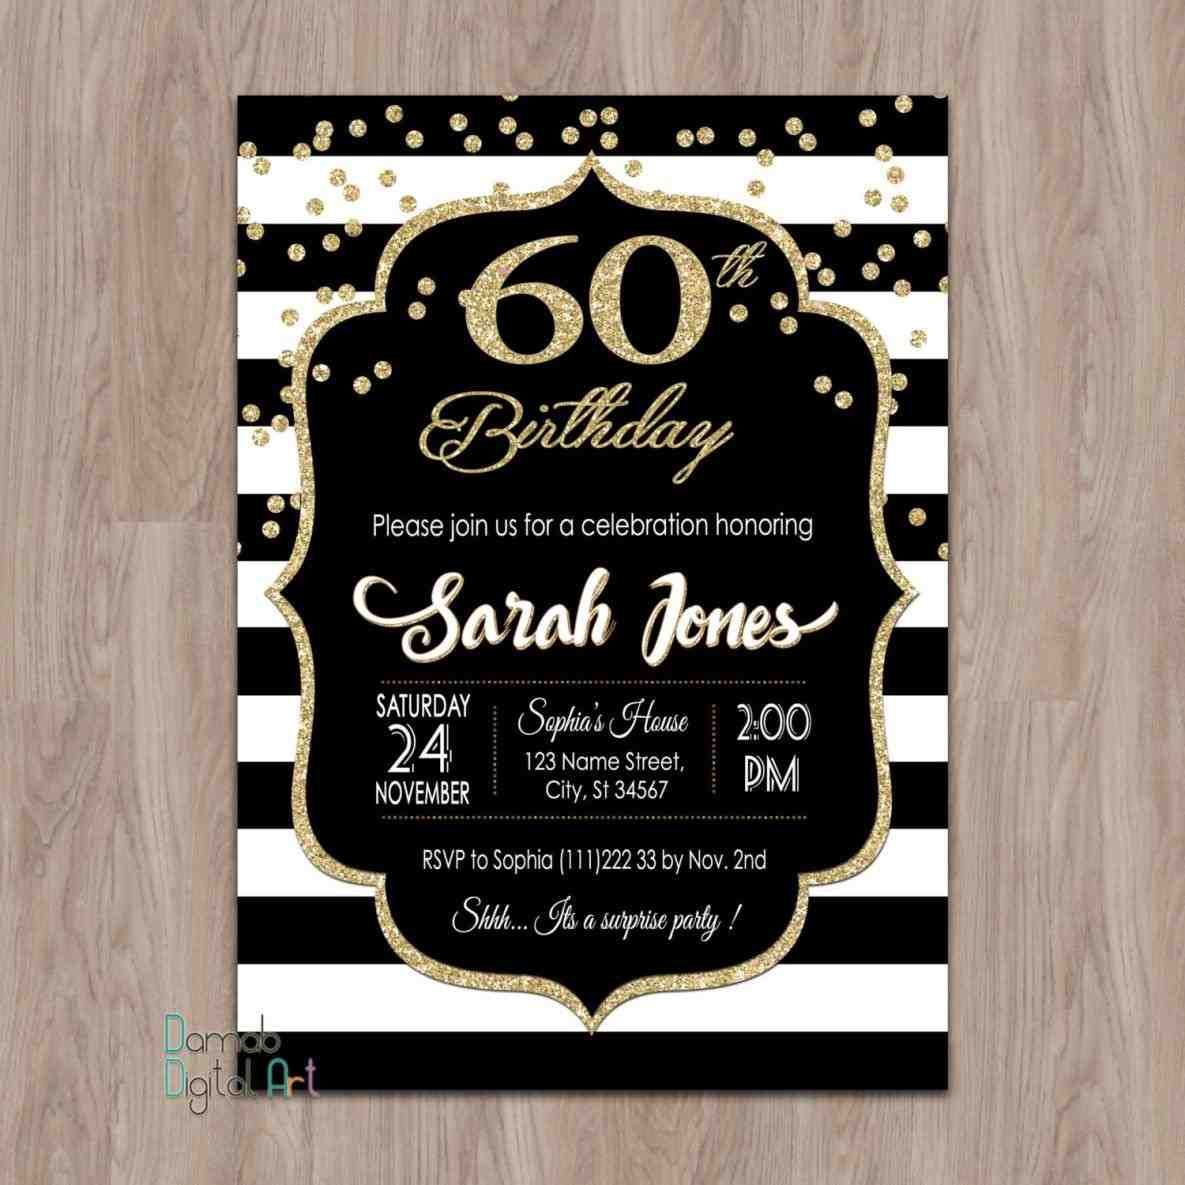 Designclassic 50th Birthday Invitations For Him With Card Hd Speach Nice Looking White Template Happiness The Old Man And Laurens Party